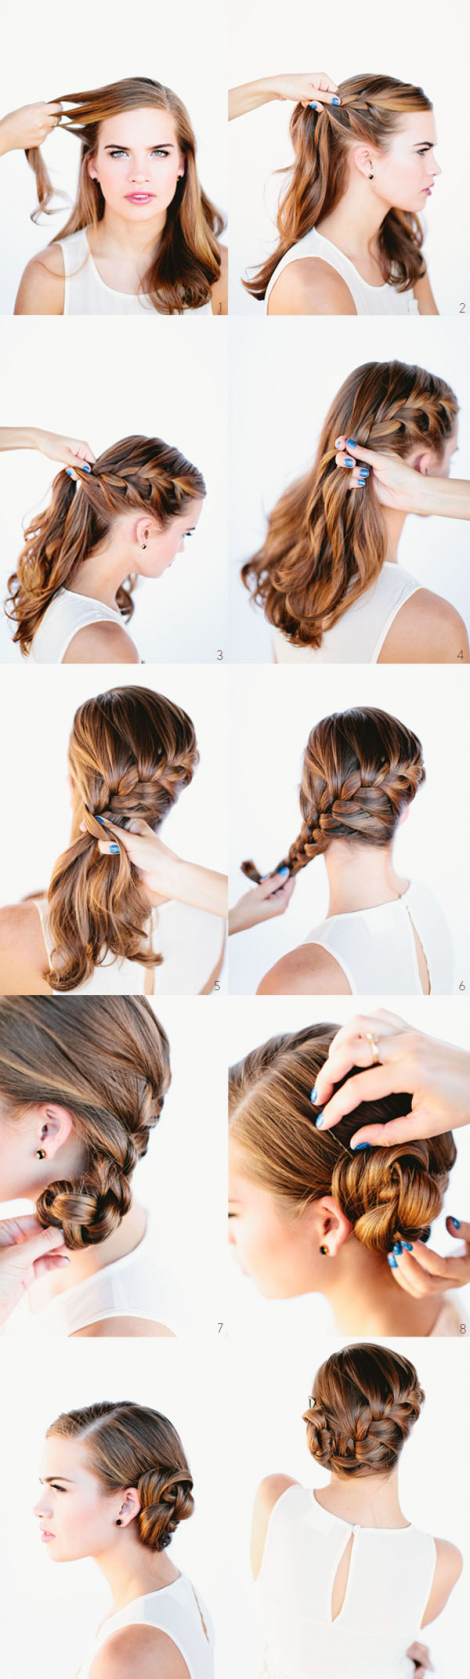 7-FRENCH-BRAID-BUN-HAIR